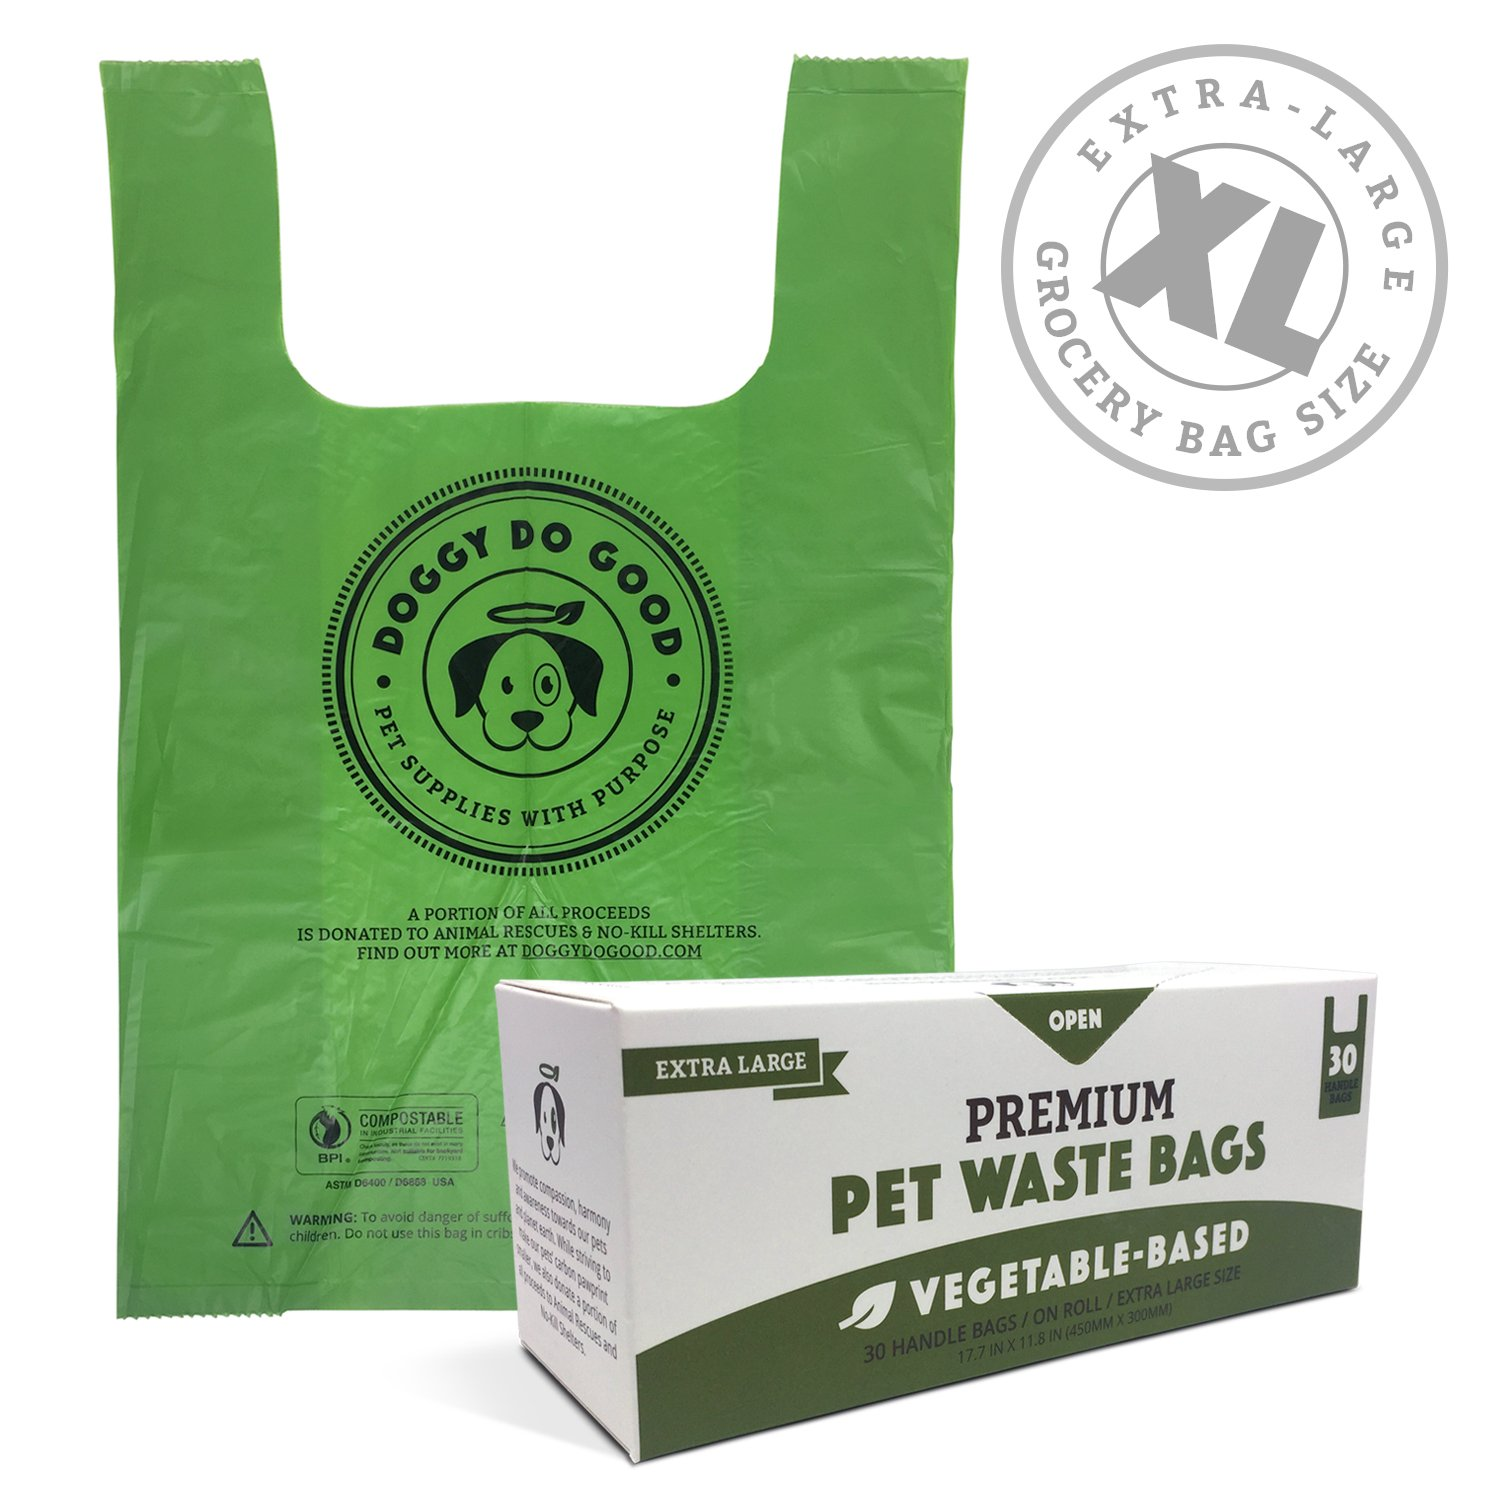 Biodegradable Poop Bags | XL Cat Litter/X-Large Dog Waste Bags, Vegetable-Based & Eco-Friendly, Premium Thickness & Leak Proof, Easy-Tie Handles, Supports Rescues by Doggy Do Good